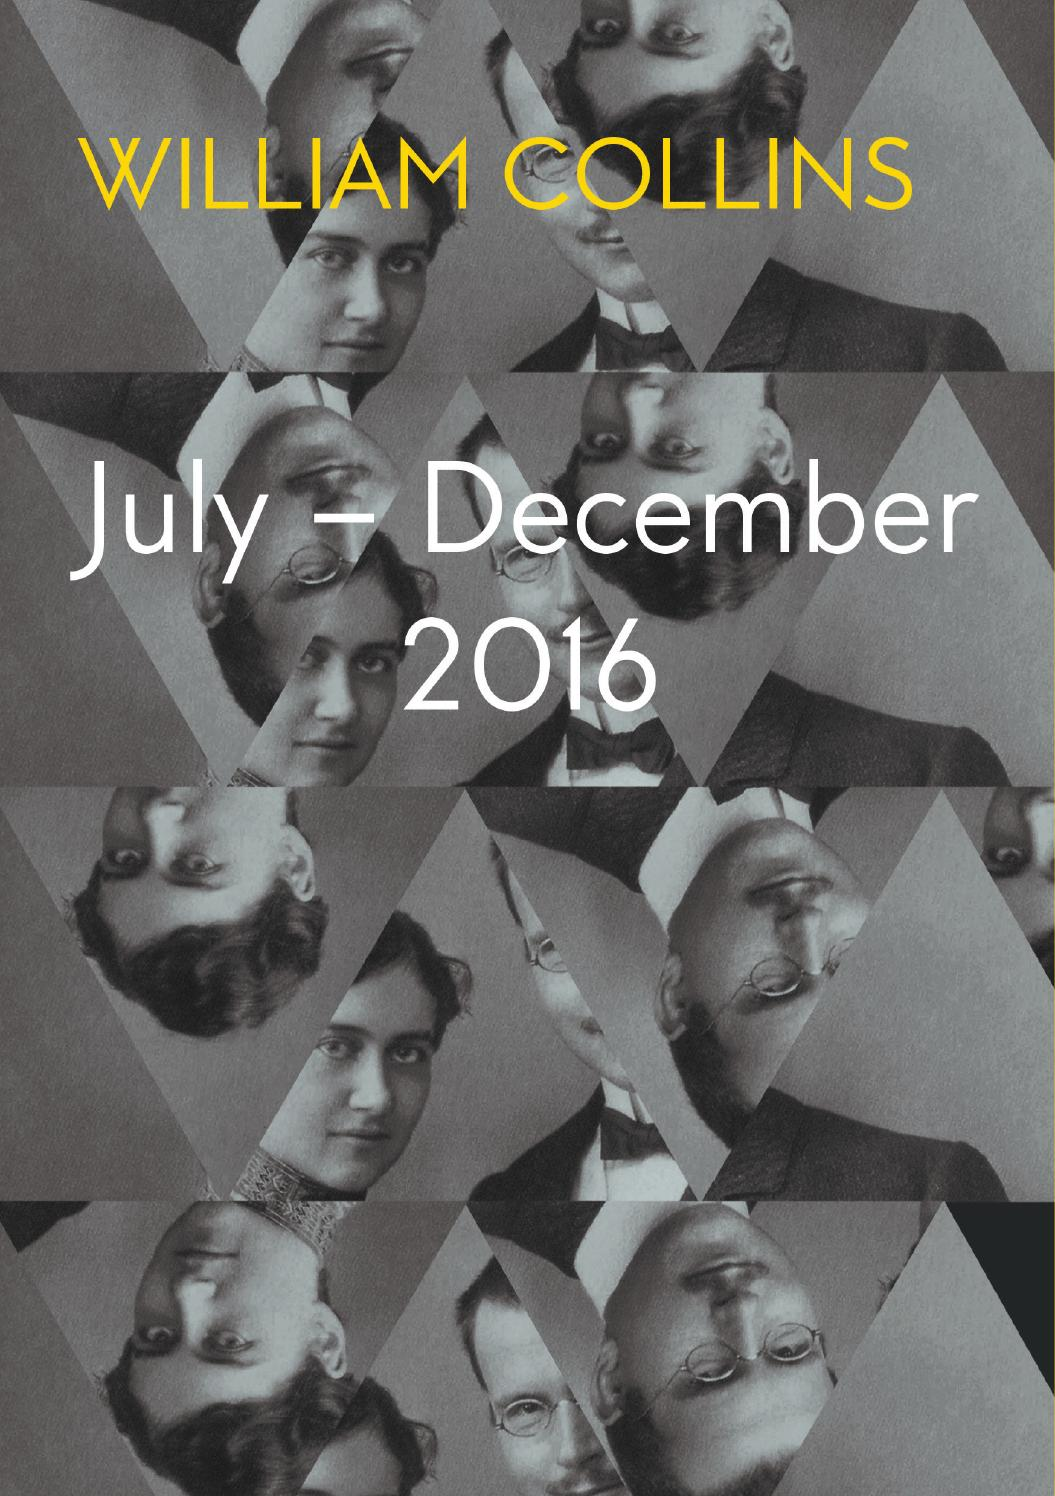 William Collins Catalogue Julydecember 2016 By 4th Estate Books  Issuu